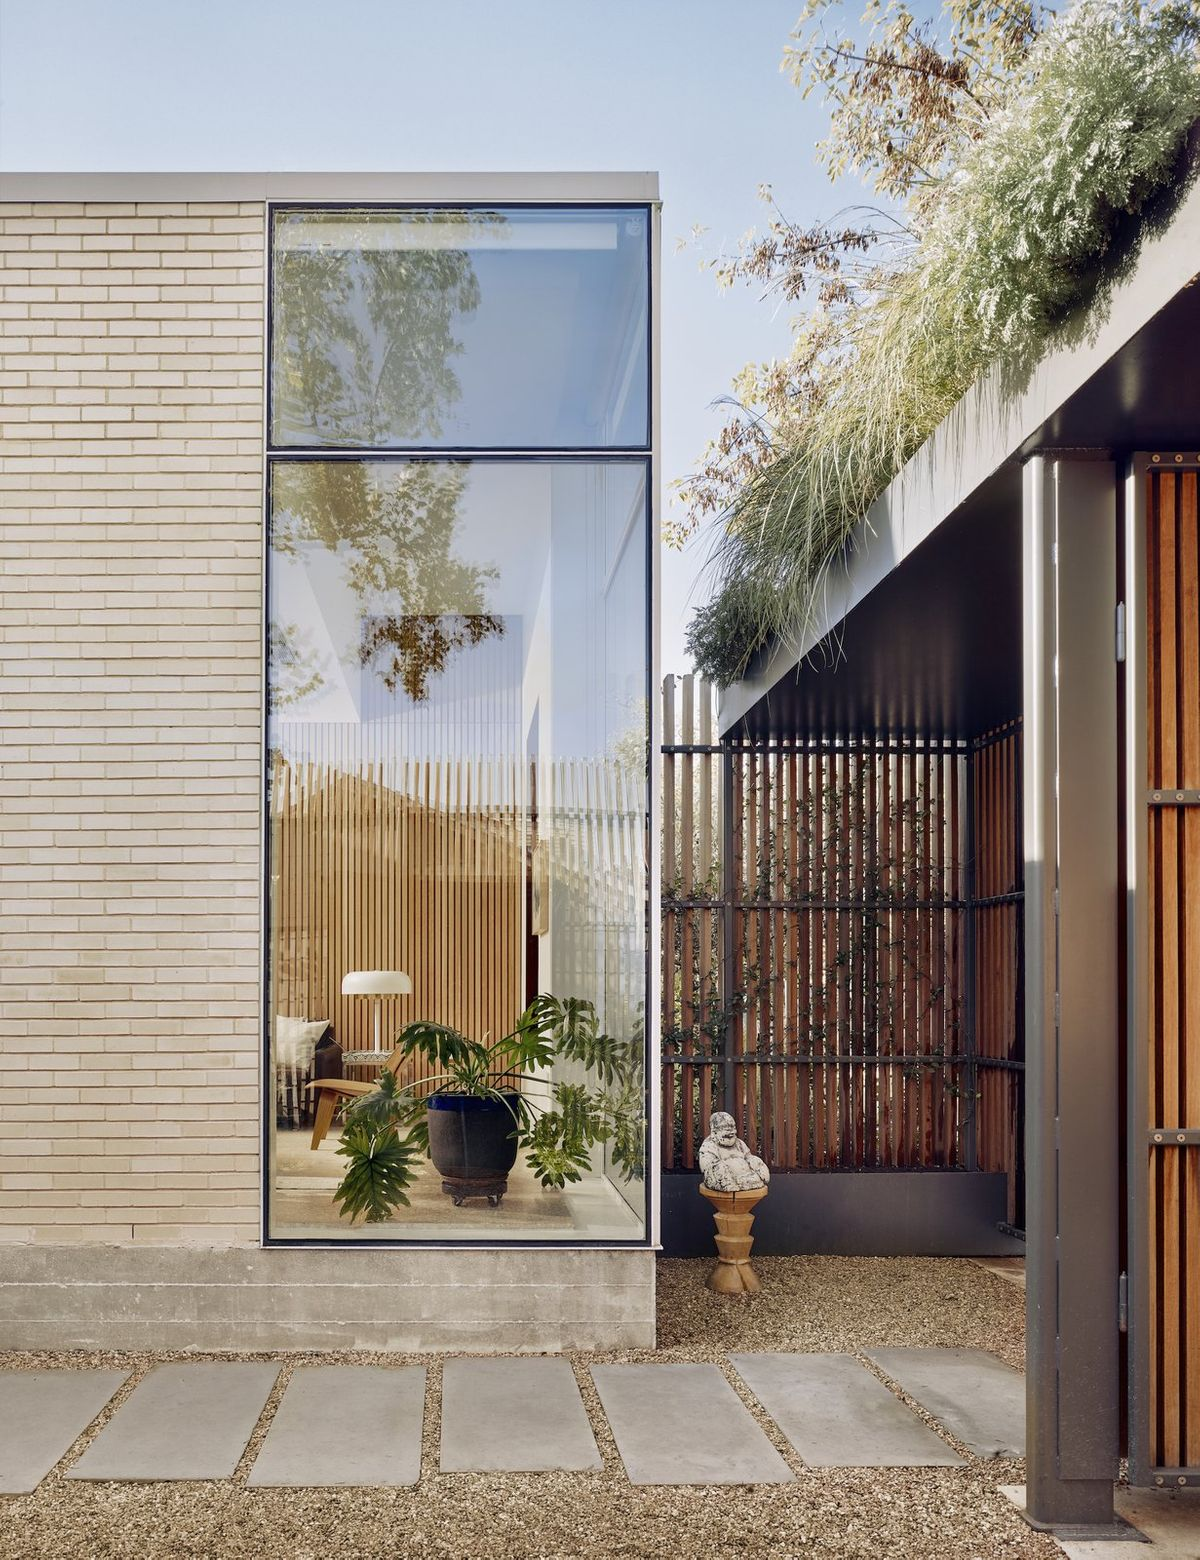 the-entrance-is-through-an-enclosed-courtyard-which-features-ipe-brazilian-walnut-timber-fencing-with-an-exposed-painted-steel-structure-topped-with-planters-the-living-room-is-visible-through-a-glazed-corner.jpg